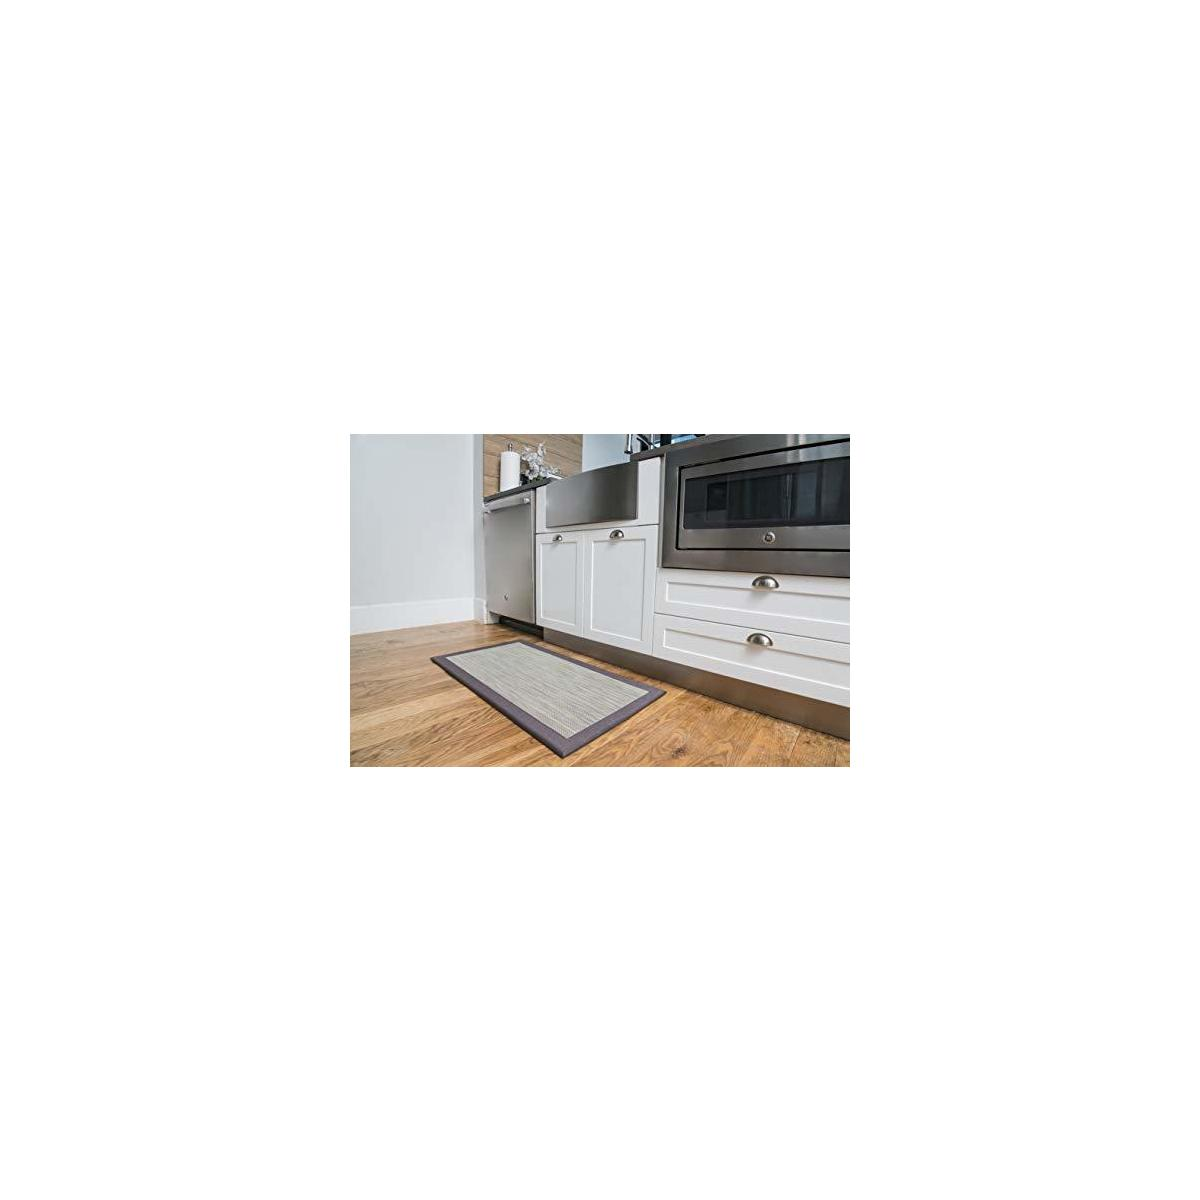 Deluxe Anti Fatigue Standing Kitchen Comfort Mat (39 x 20 inch) Ergonomic Non-Toxic Rug and Mat for Home or Office Standing Desk Or Work Place Safety from Cooler Kitchen